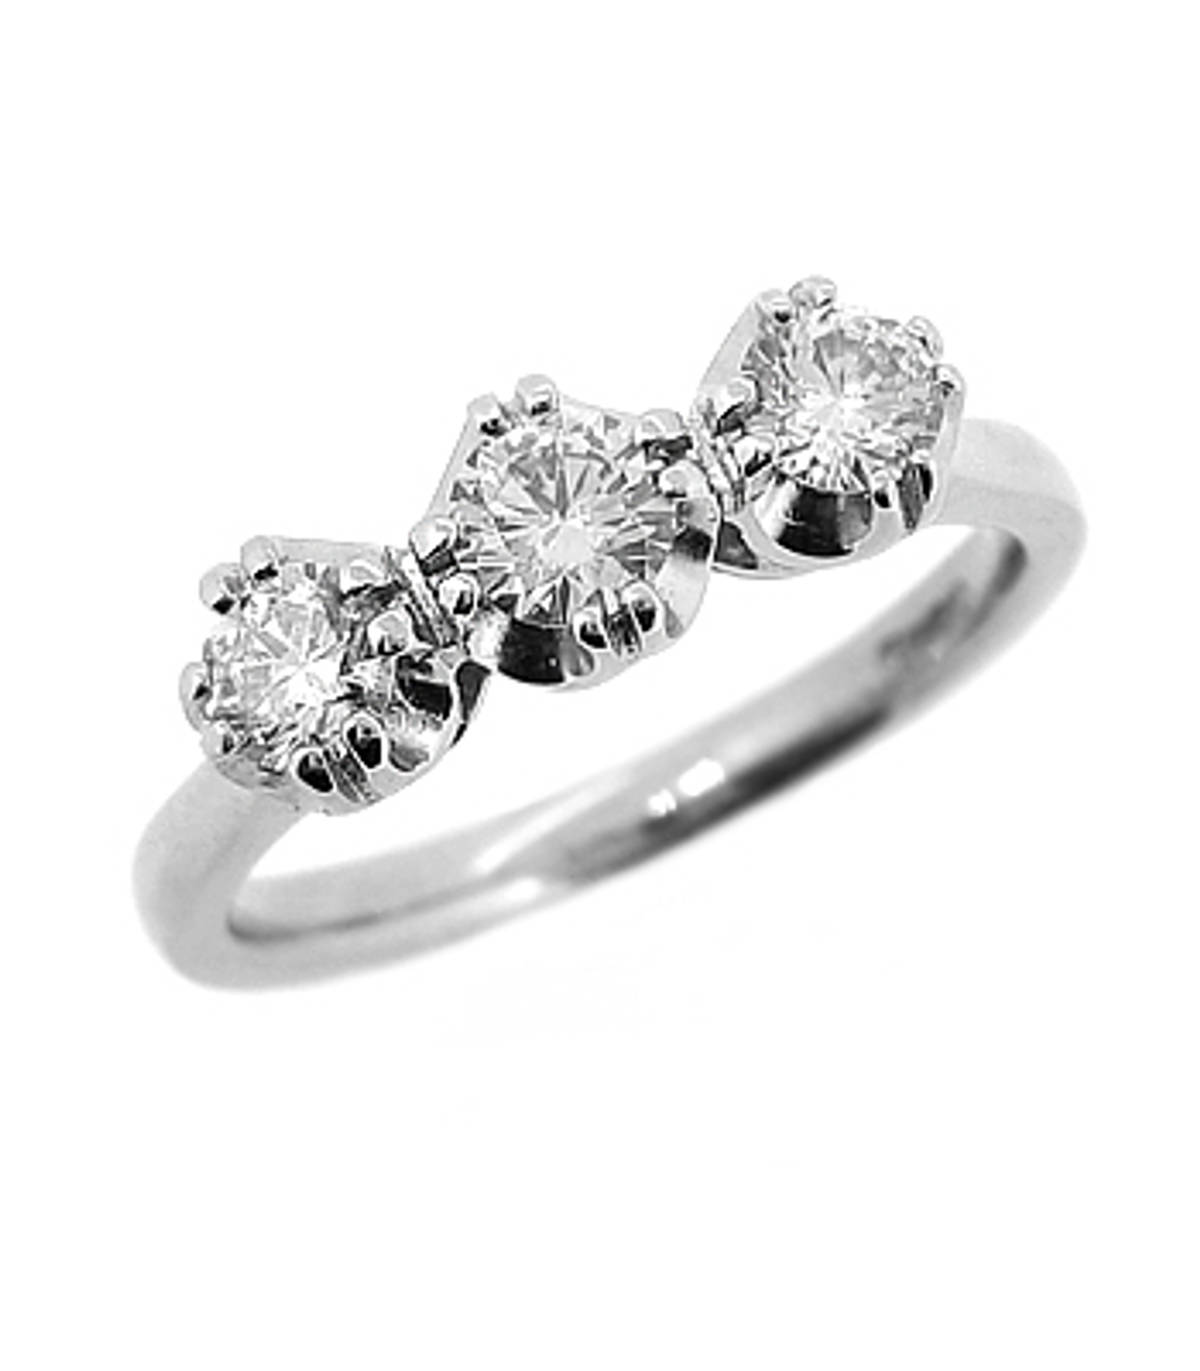 3 STONE DIAMOND RING 18k white gold 3st brilliant cut diamond ringDETAILSCarat: centre diamond 0.20cts /side 2 diamonds total 0.33cts